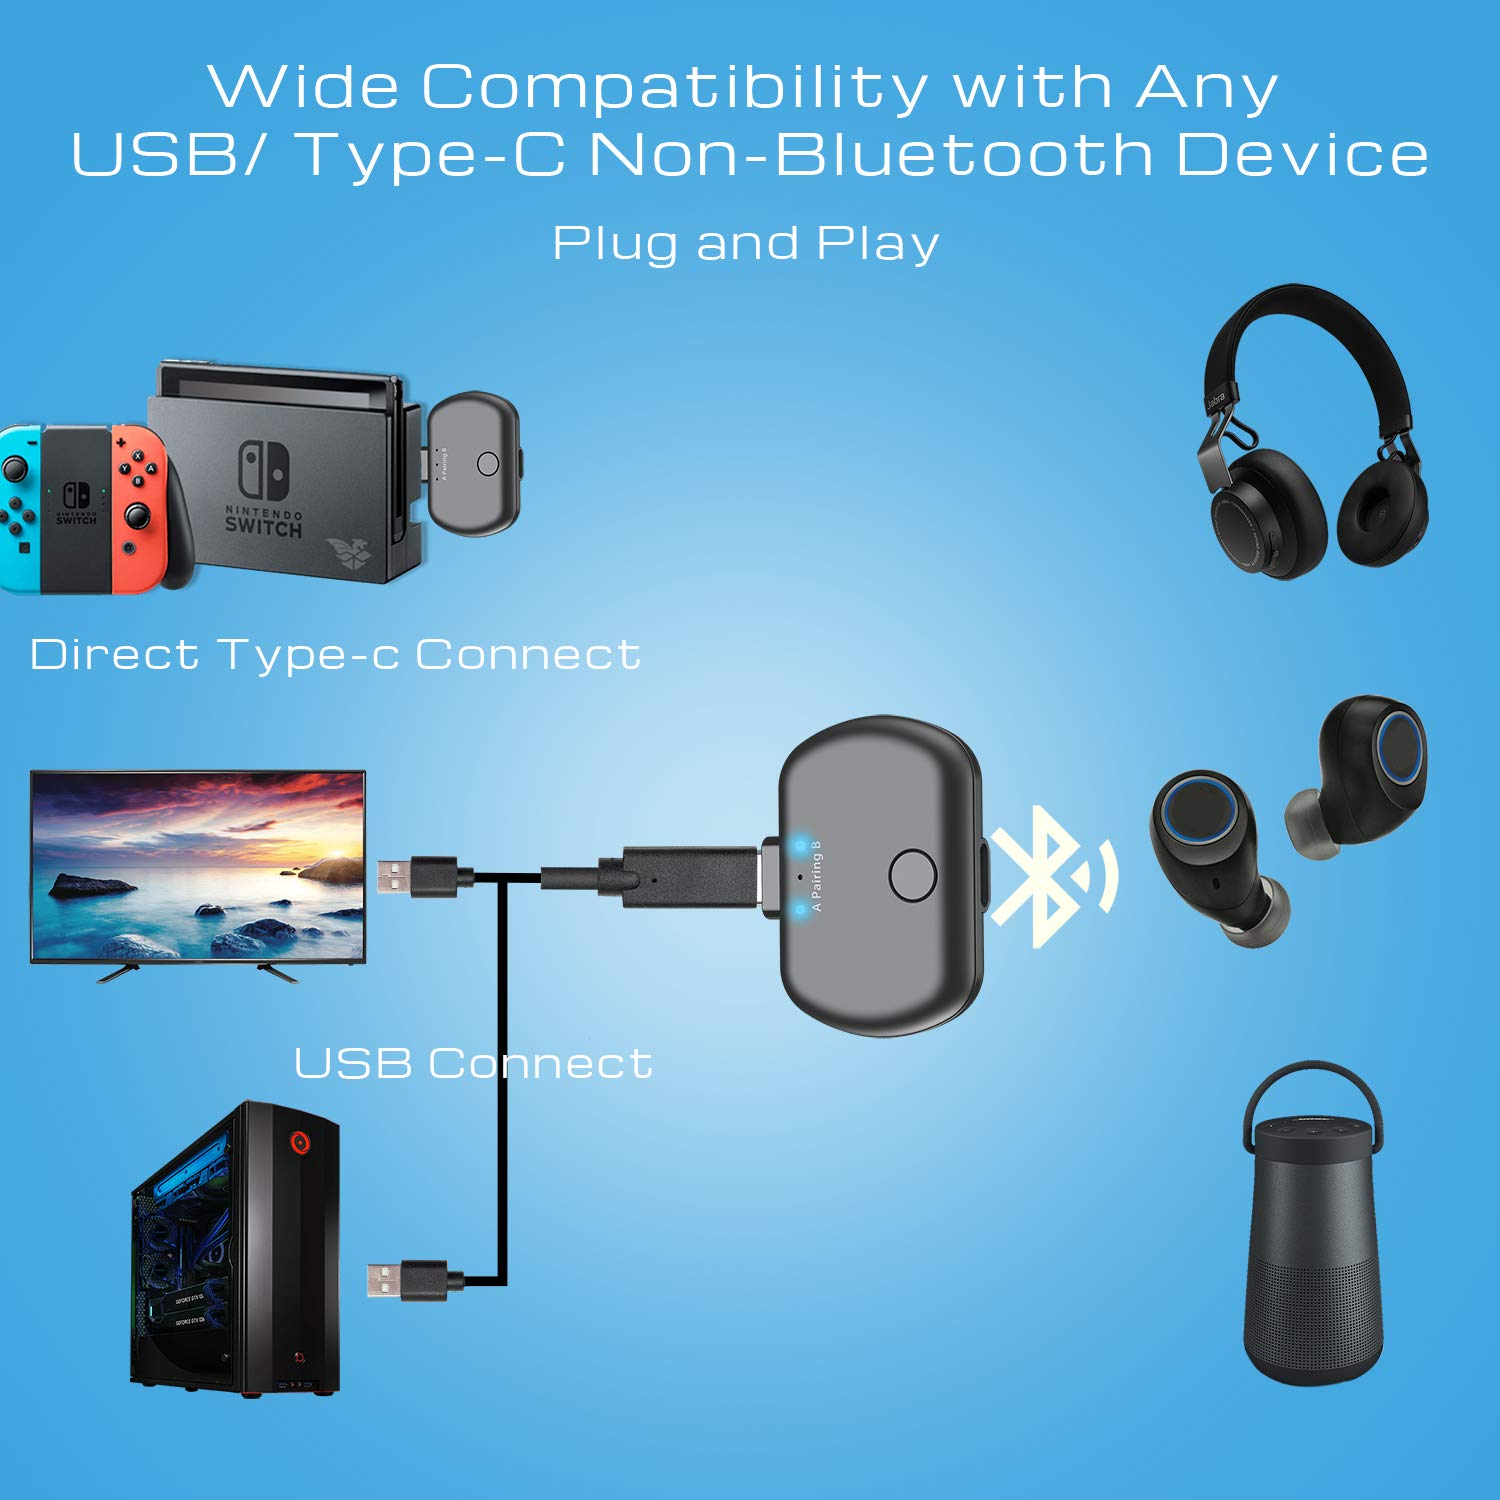 Amazon Com Golvery Bluetooth V5 0 Adapter For Nintendo Switch Lite Usb Bluetooth Transmitter For Ps4 Plug Play Pass Through Pd High Speed Charging Support In Game Voice Chat No Audio Delay Electronics